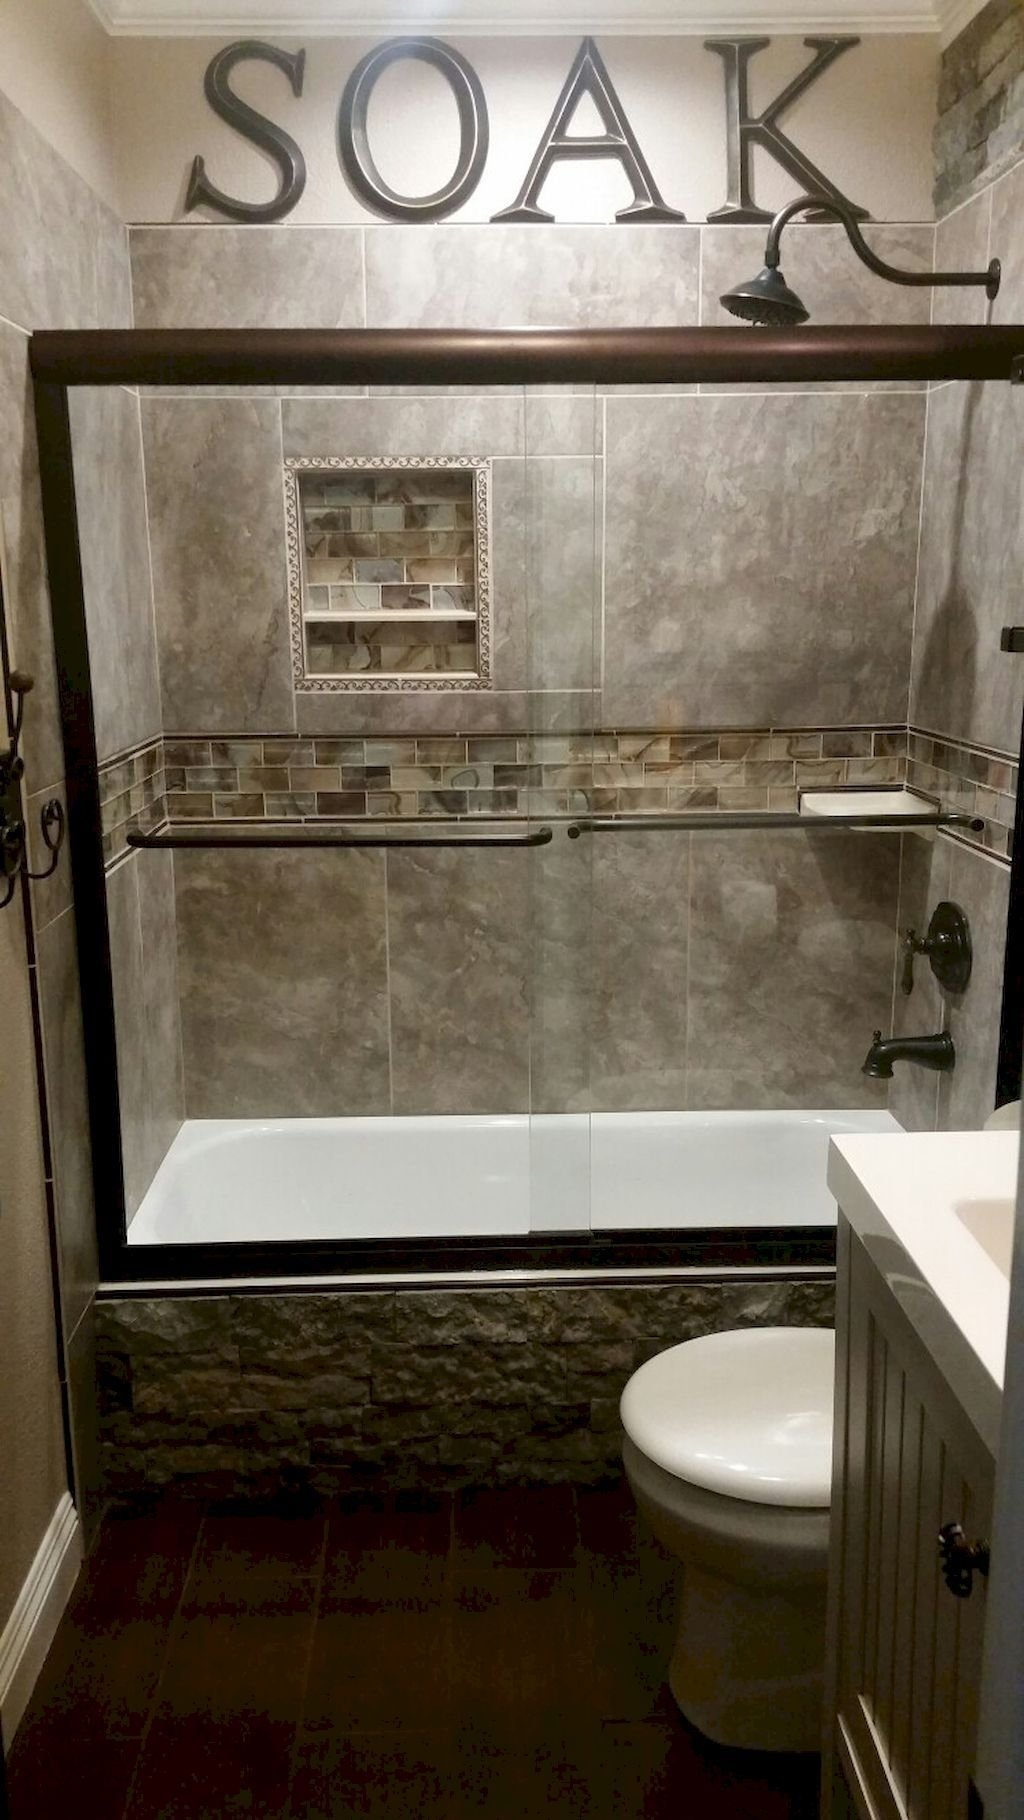 10 Unique Ideas For Small Bathroom Remodel 55 cool small master bathroom remodel ideas master bathroom 1 2020